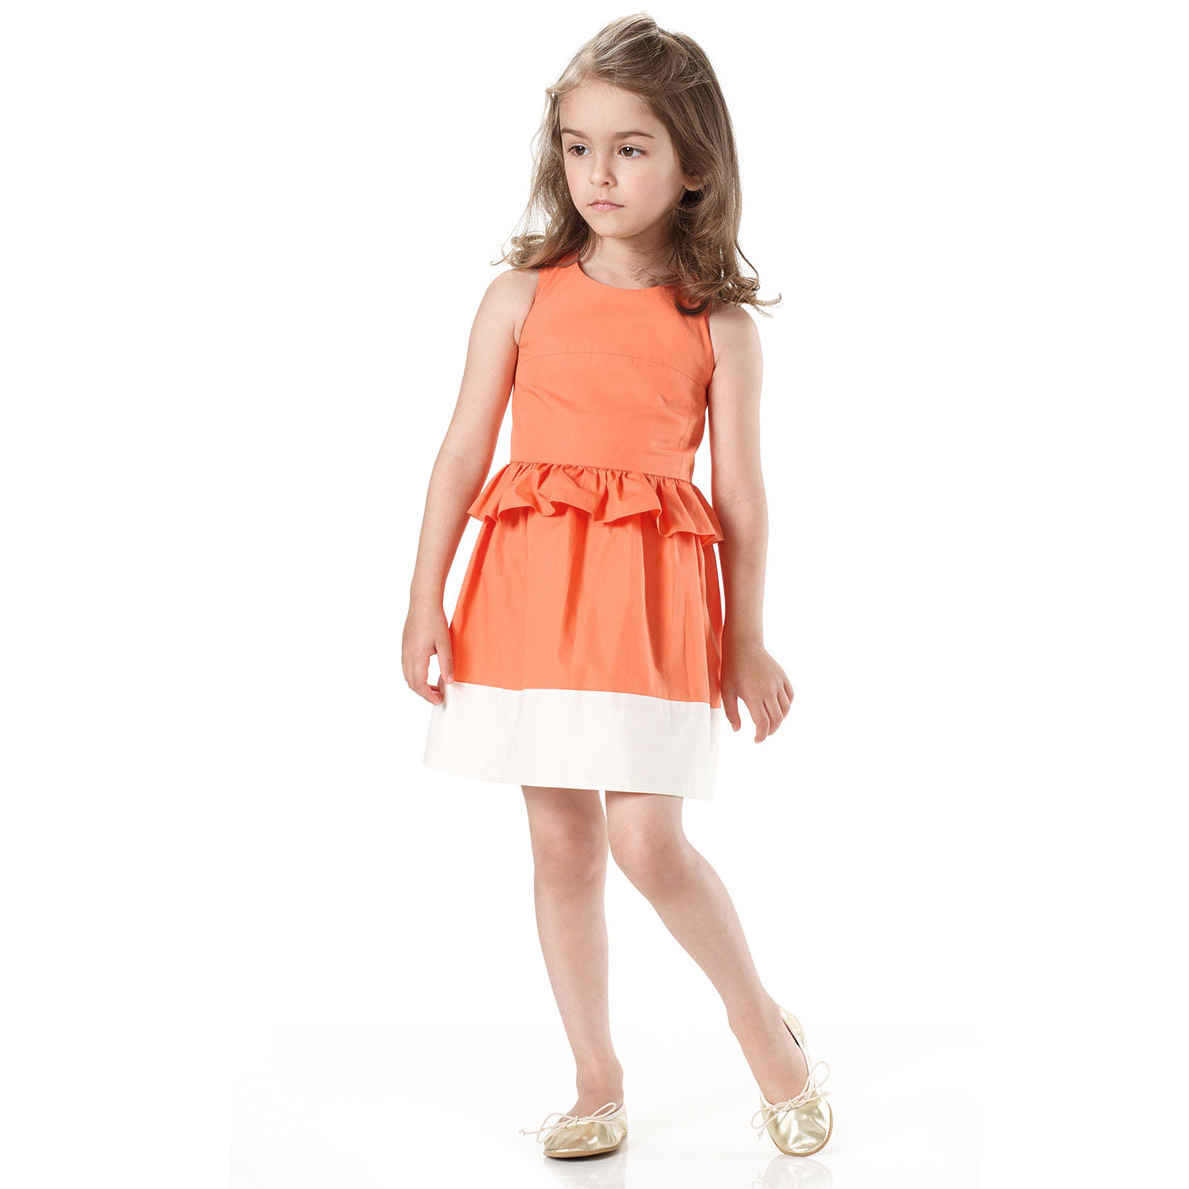 d6b9b6164423 Summer Girls Sleeveless Princess Orange Sundress Kids Fashion Lotus Leaf  Waist Party Prom Child Dress For Children Clothing